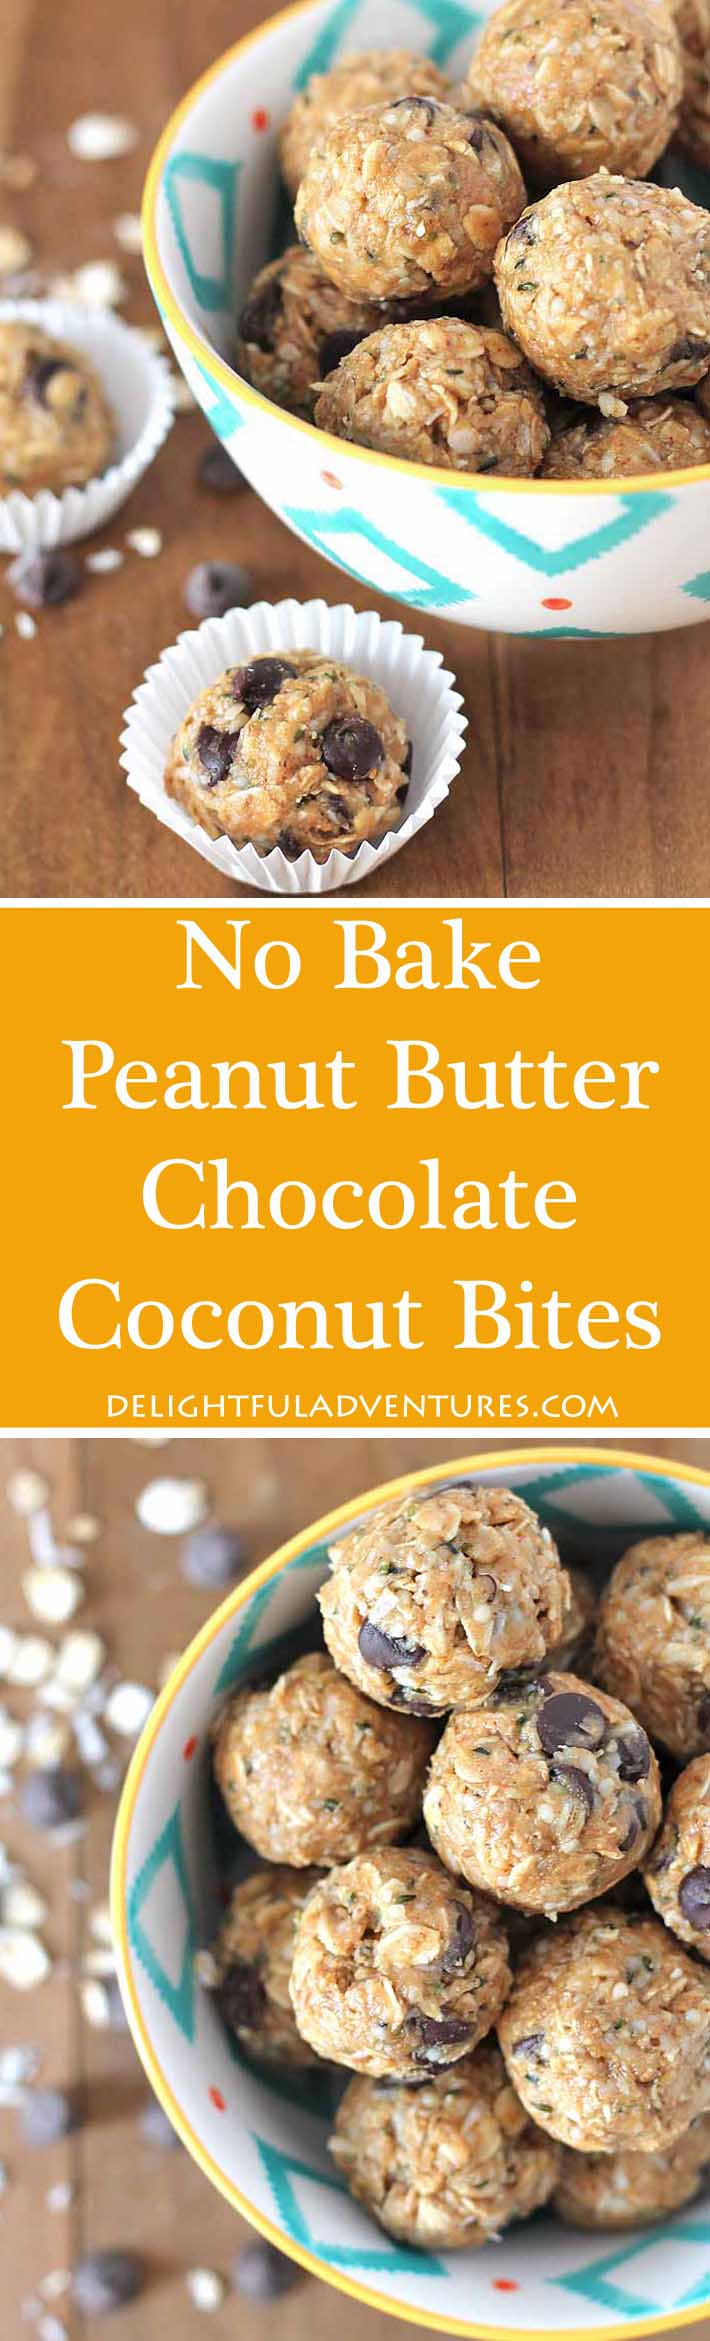 Craving something sweet but healthy? Then grab one of these easy No Bake Peanut Butter Chocolate Coconut Bites. They're quick to make and they're delicious!